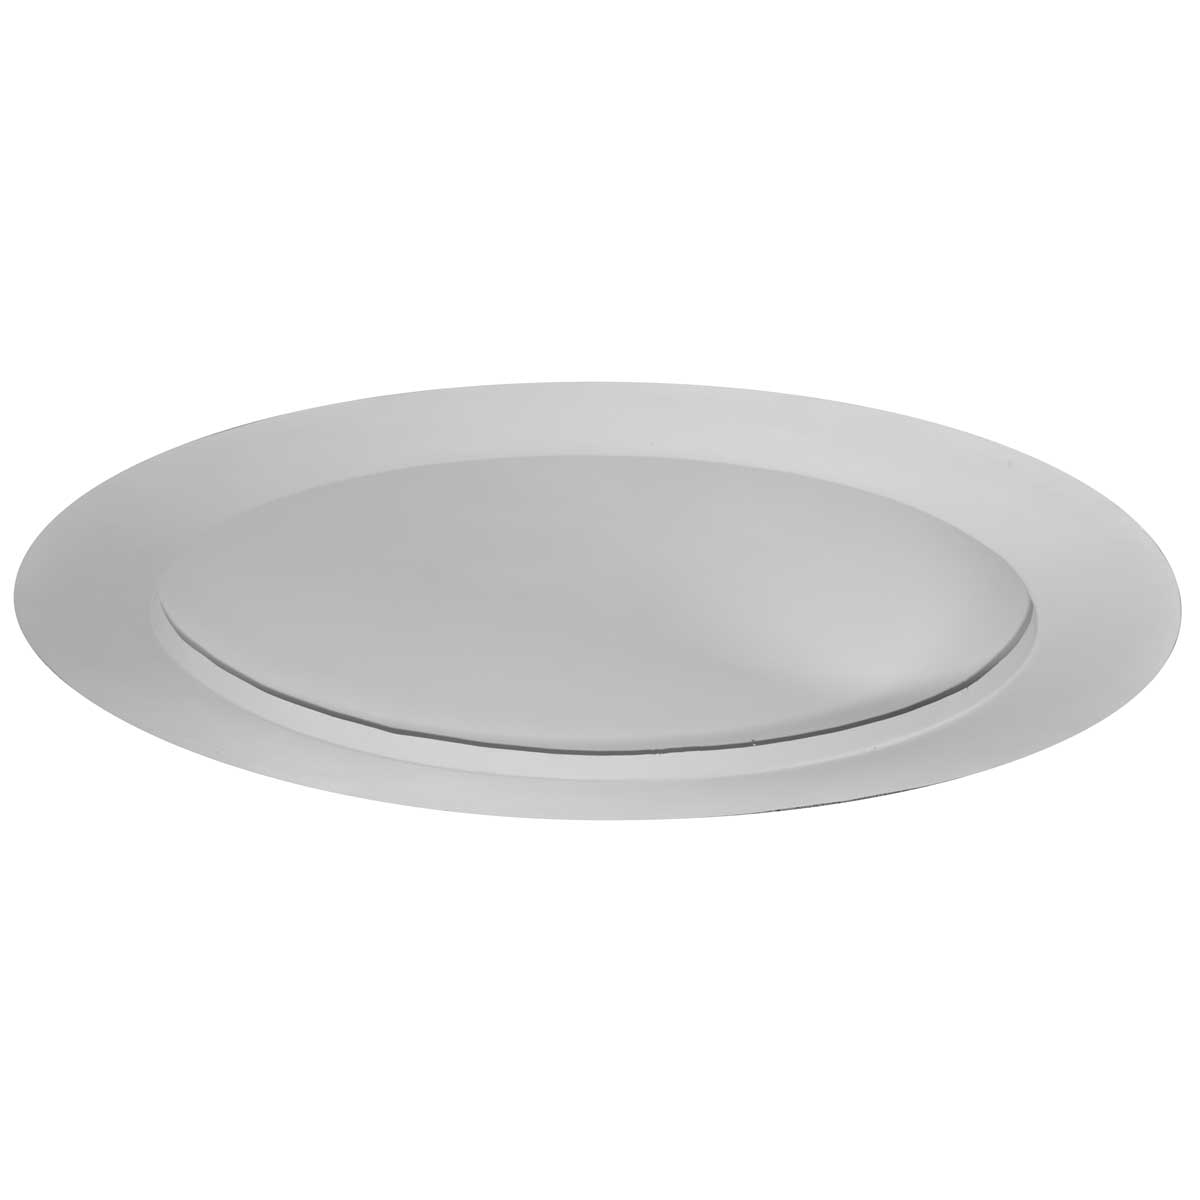 """DOME50AR 50-3/8""""OD x 48""""ID x 8-7/8""""D Artisan Ceiling Dome with Light Ring (46-1/2""""Diameter x 9""""D Rough Opening)"""